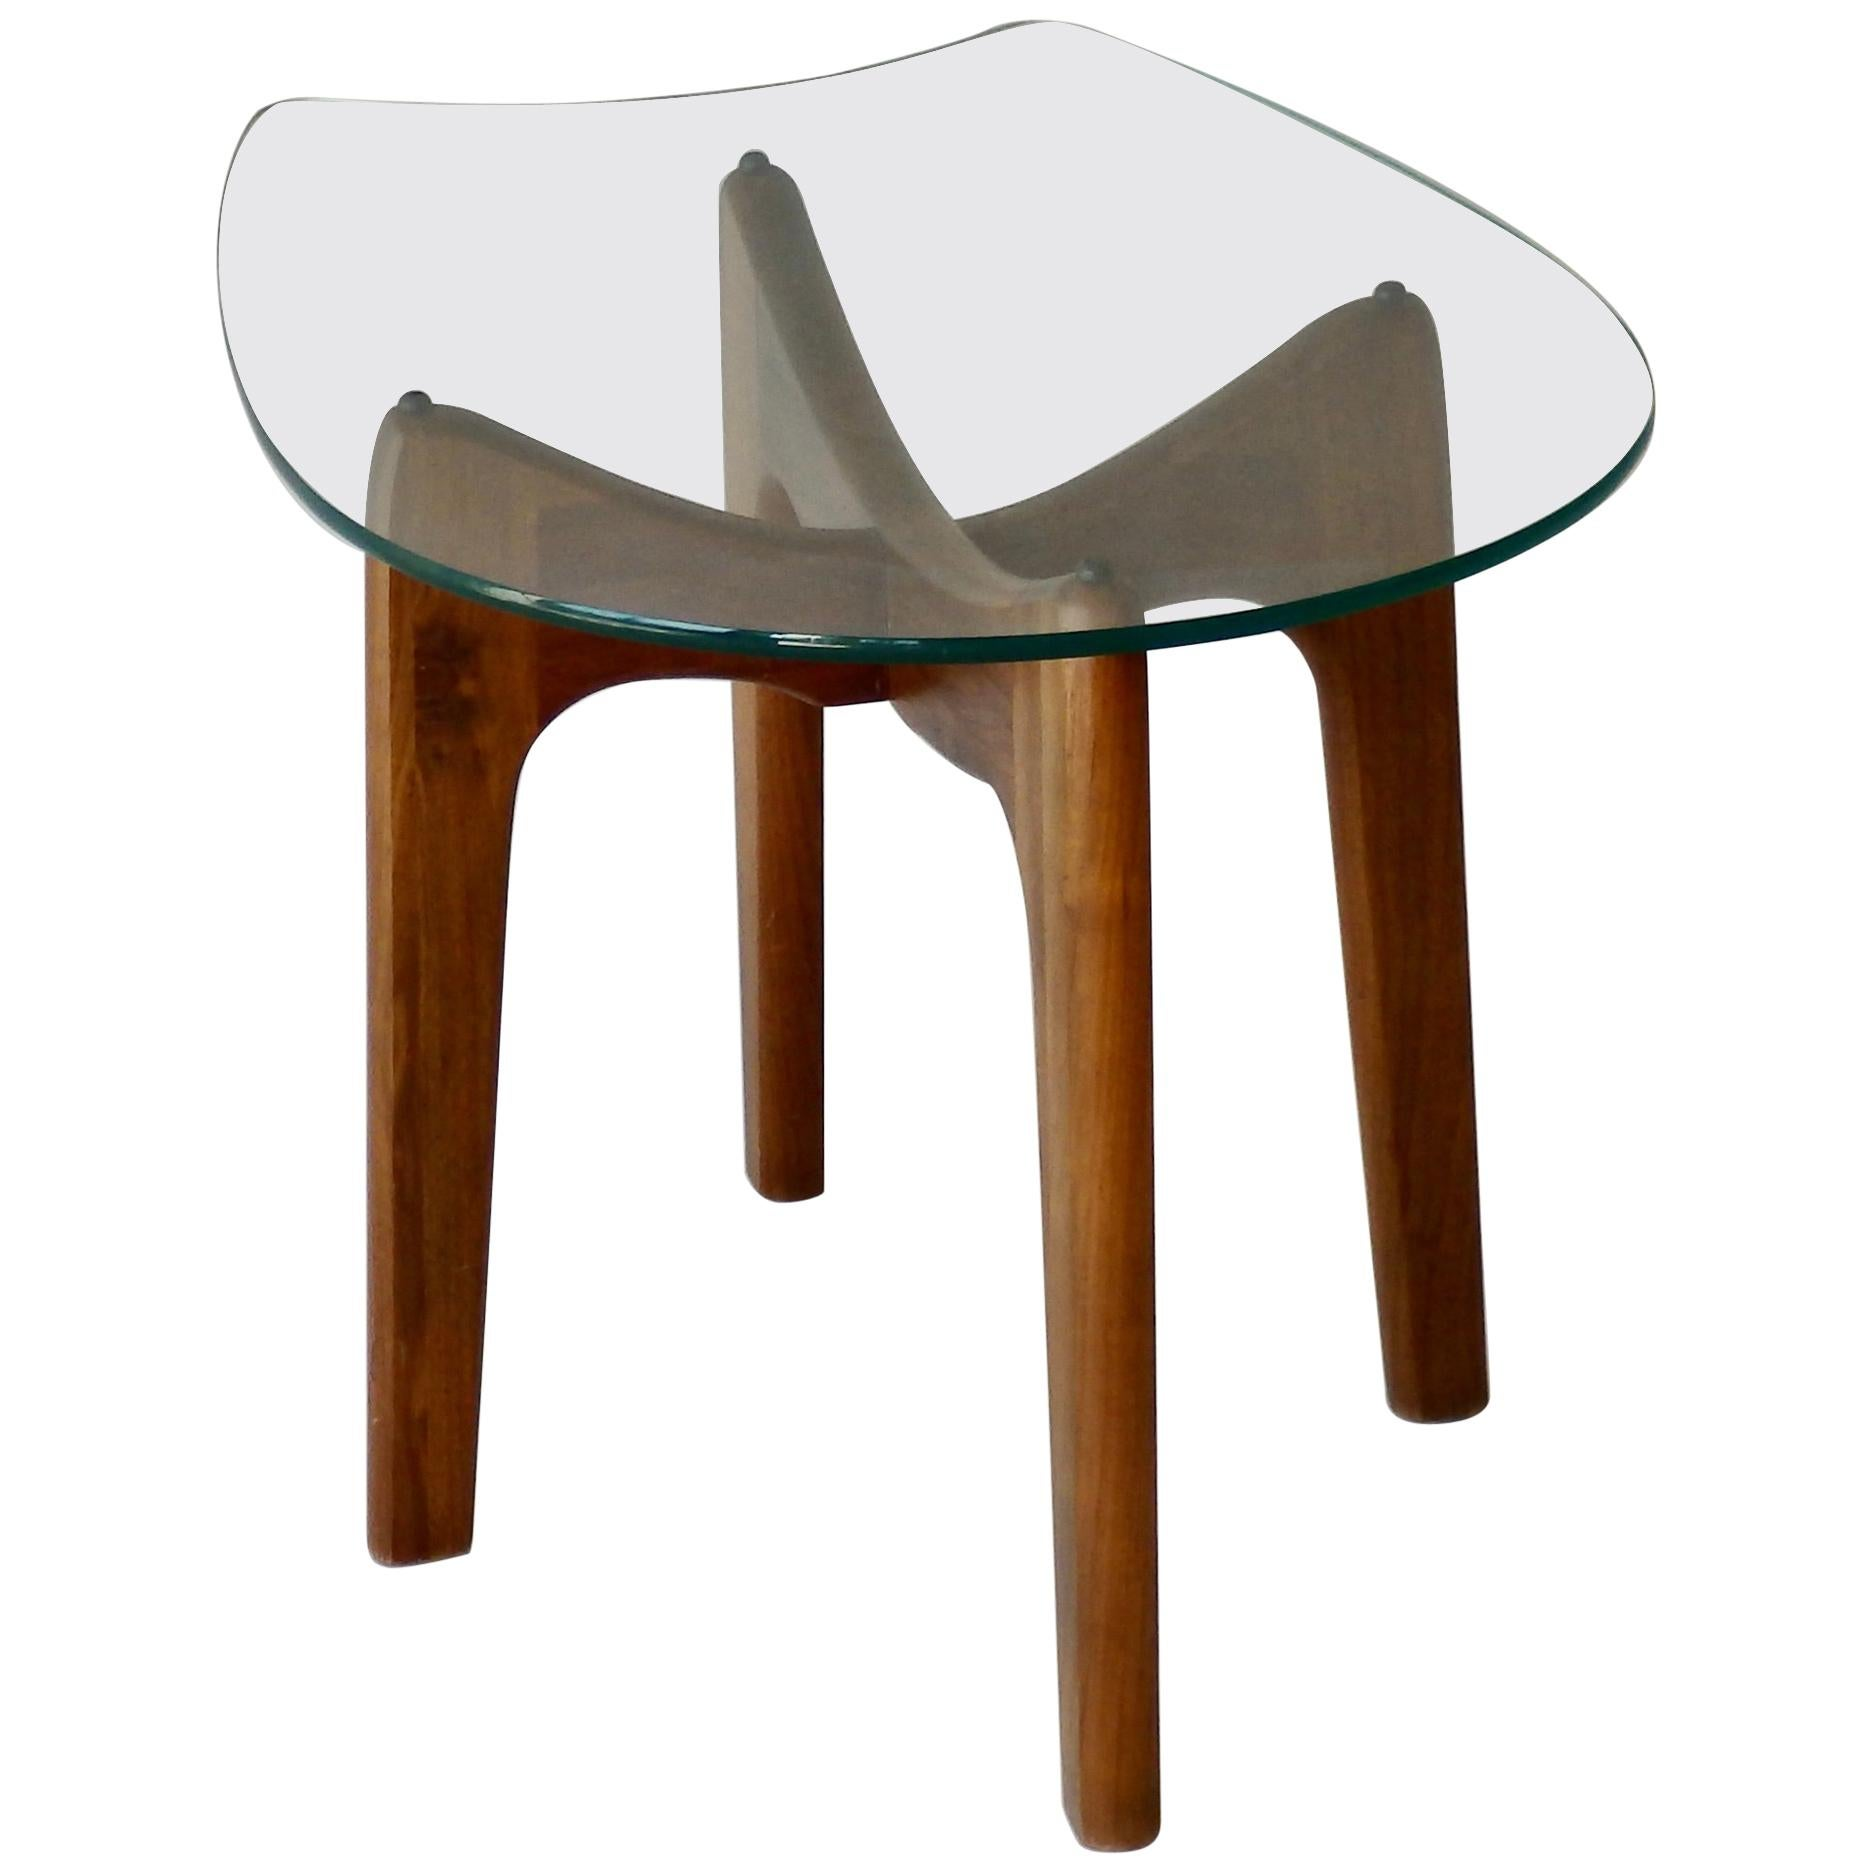 Adrian Pearsall for Craft Associates Horseshoe Glass Top Walnut Base Side Table